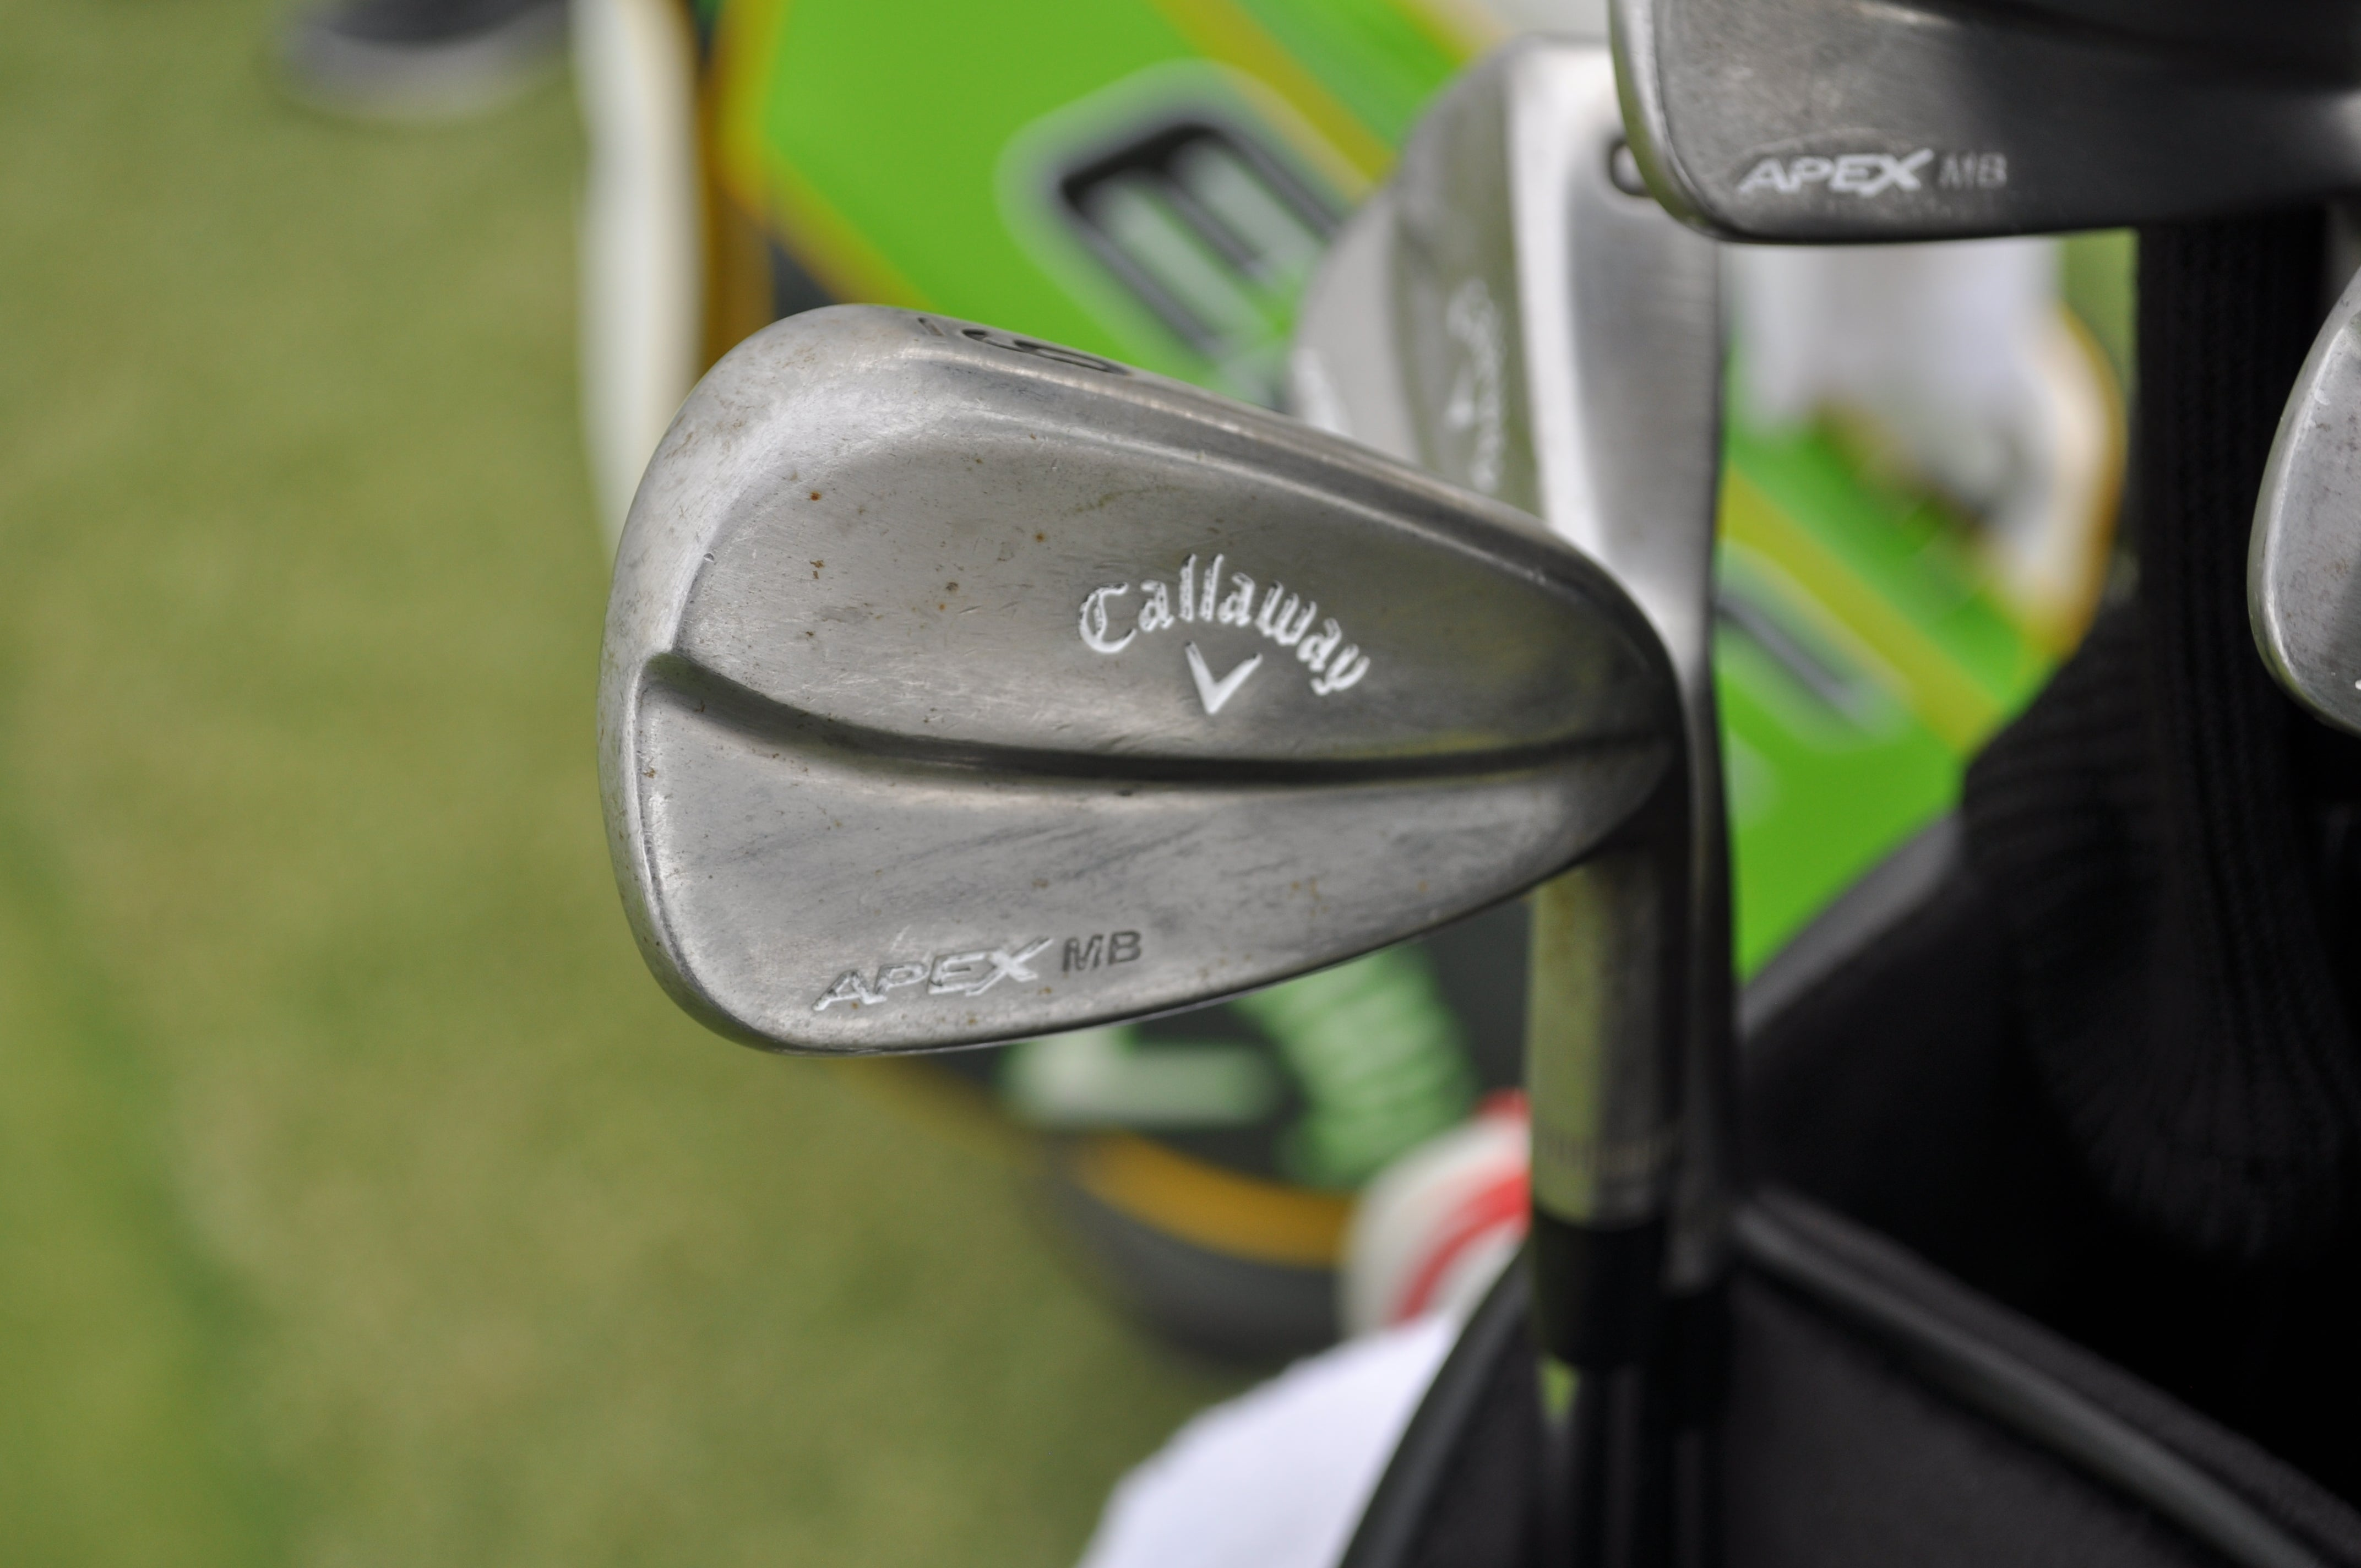 Adam Hadwin's raw Callaway Apex MB irons feature a patina finish.